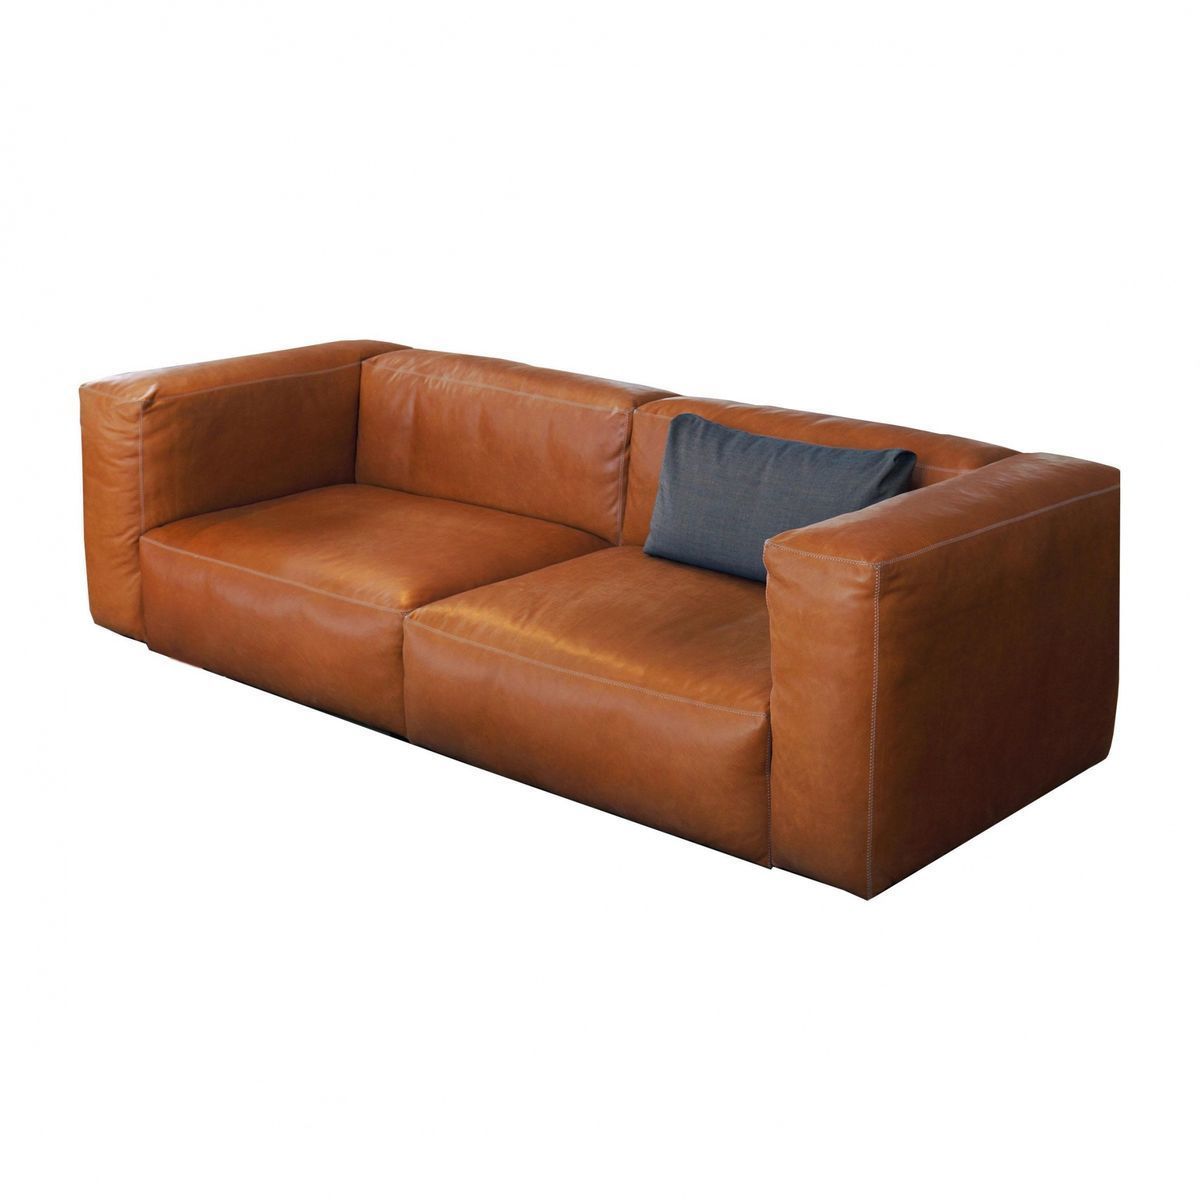 Mags Soft 2 5 Seater Leather Sofa HAY